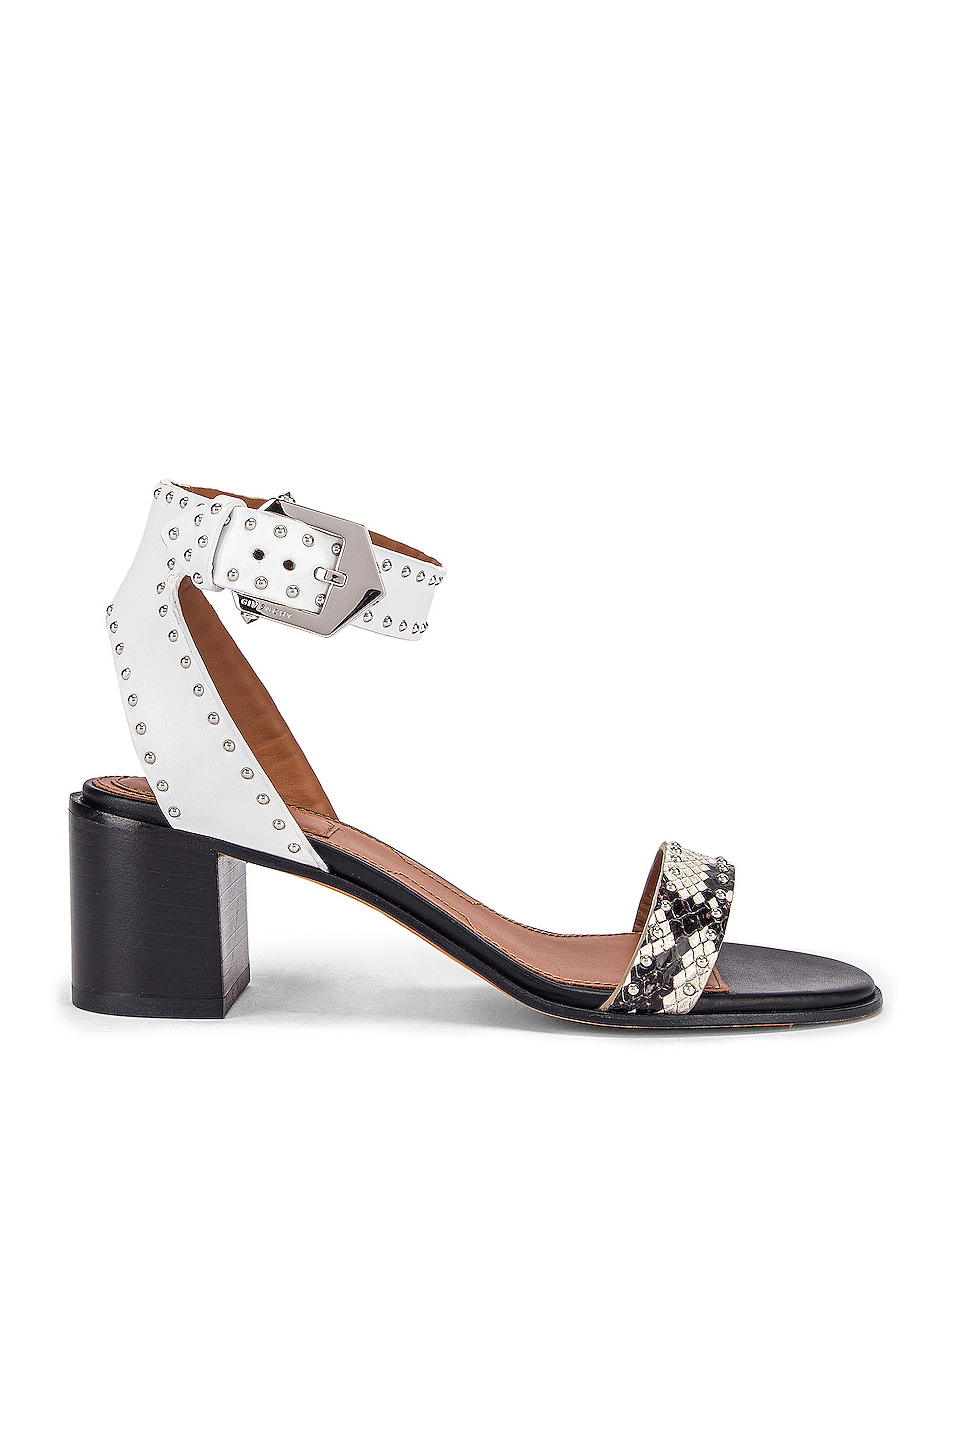 Image 1 of Givenchy Elegant Studs Heel Sandals in Black & White